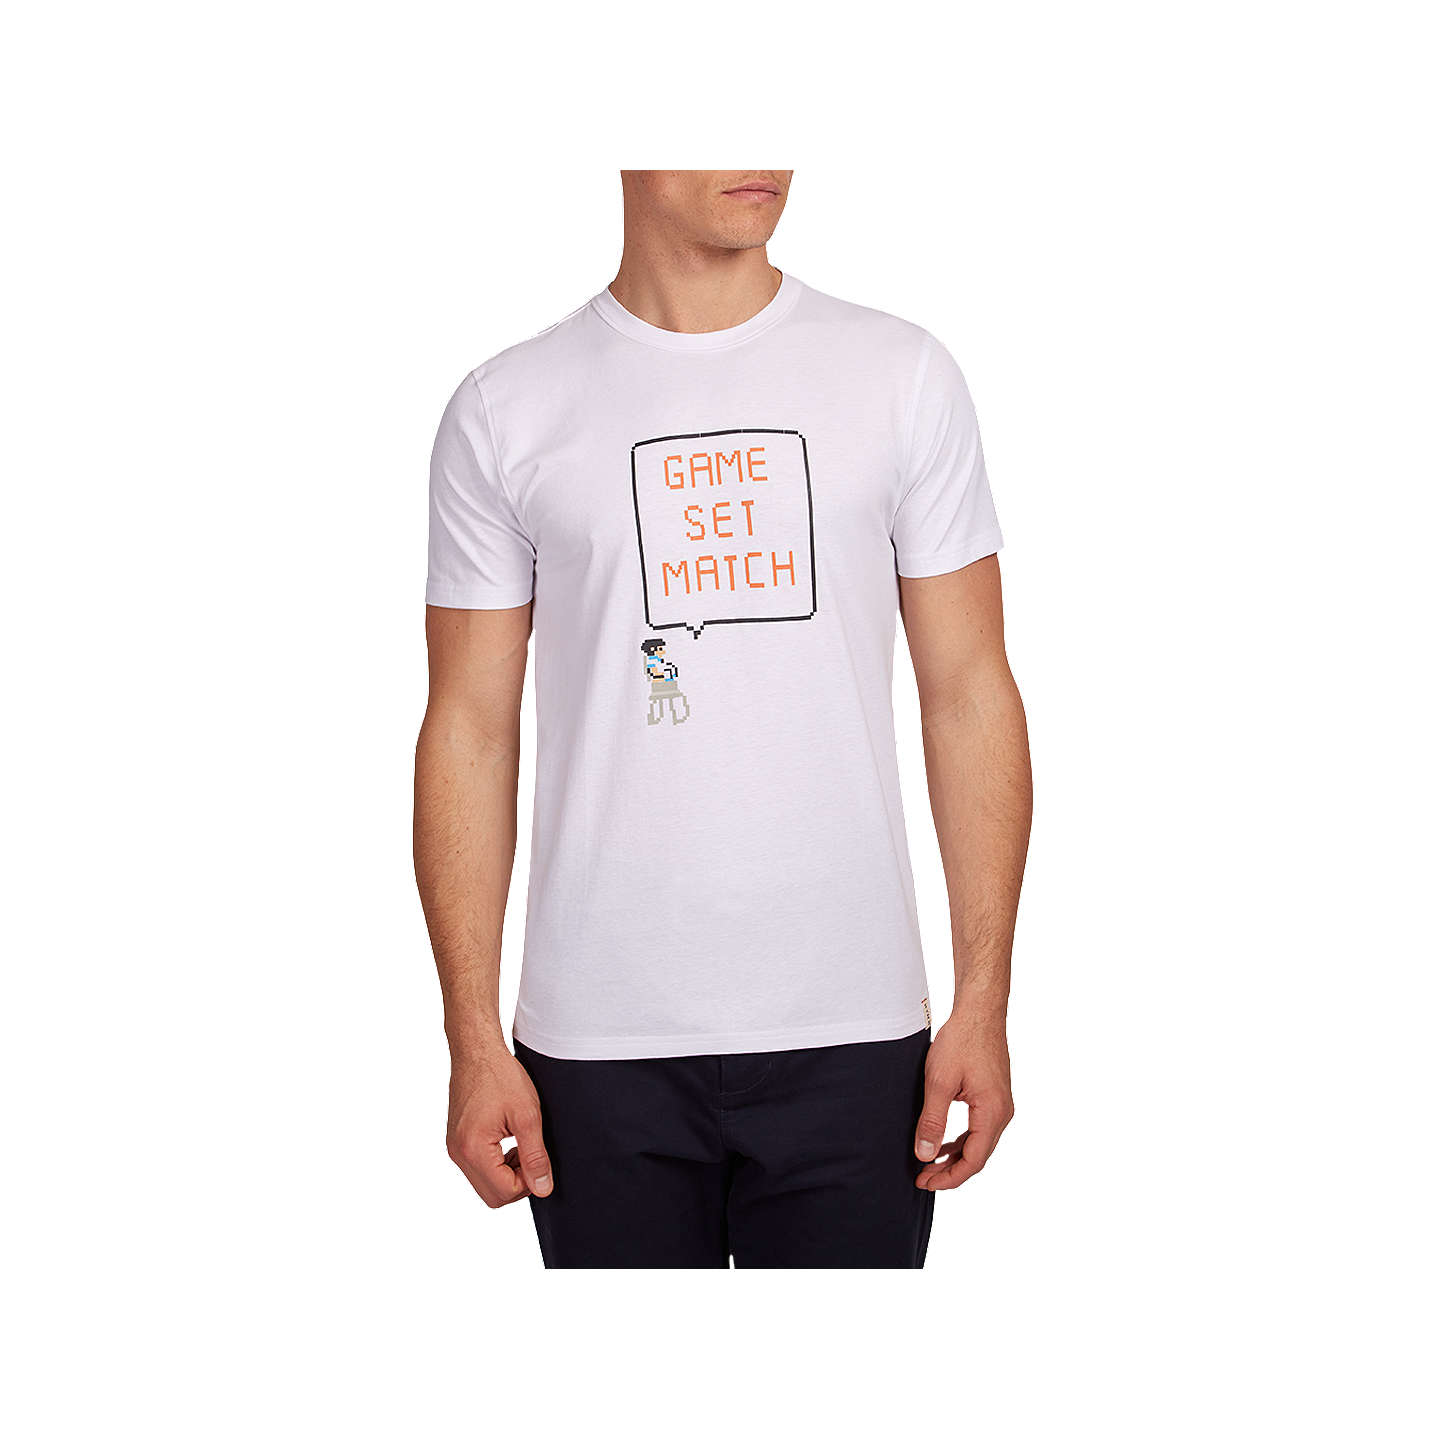 BuyHYMN Game Set Match Short Sleeve Graphic T-Shirt, White, S Online at johnlewis.com